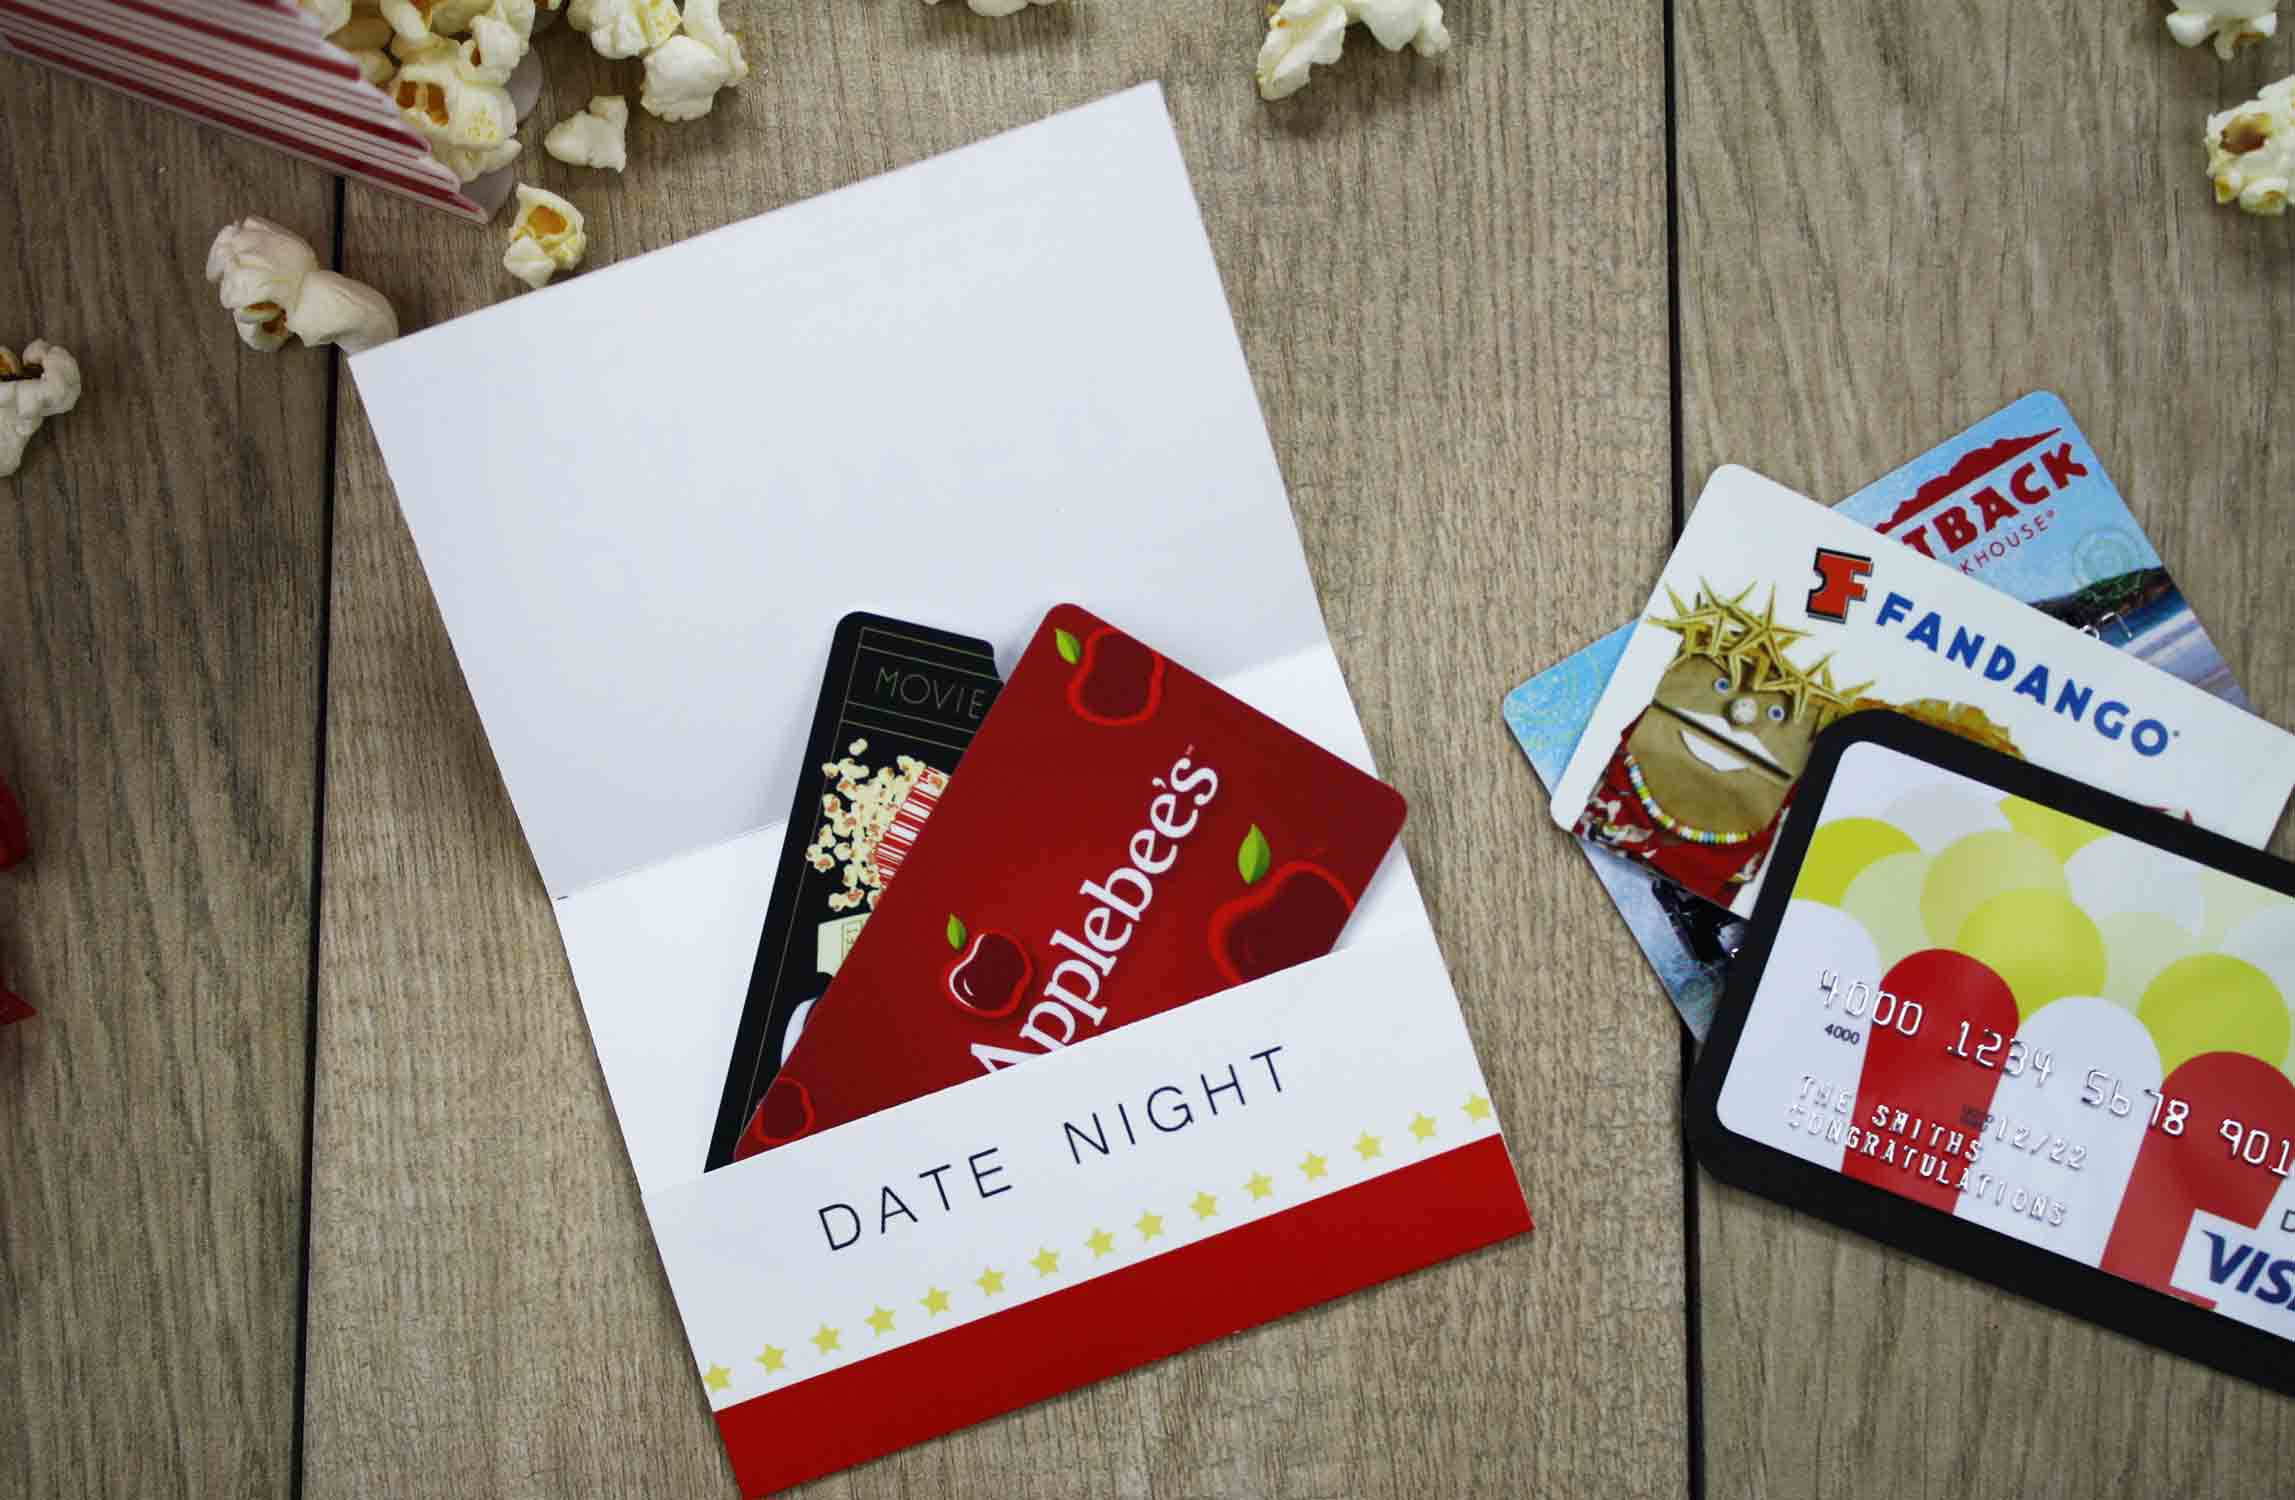 Free Printable} Give DATE NIGHT for a Wedding Gift | GCG